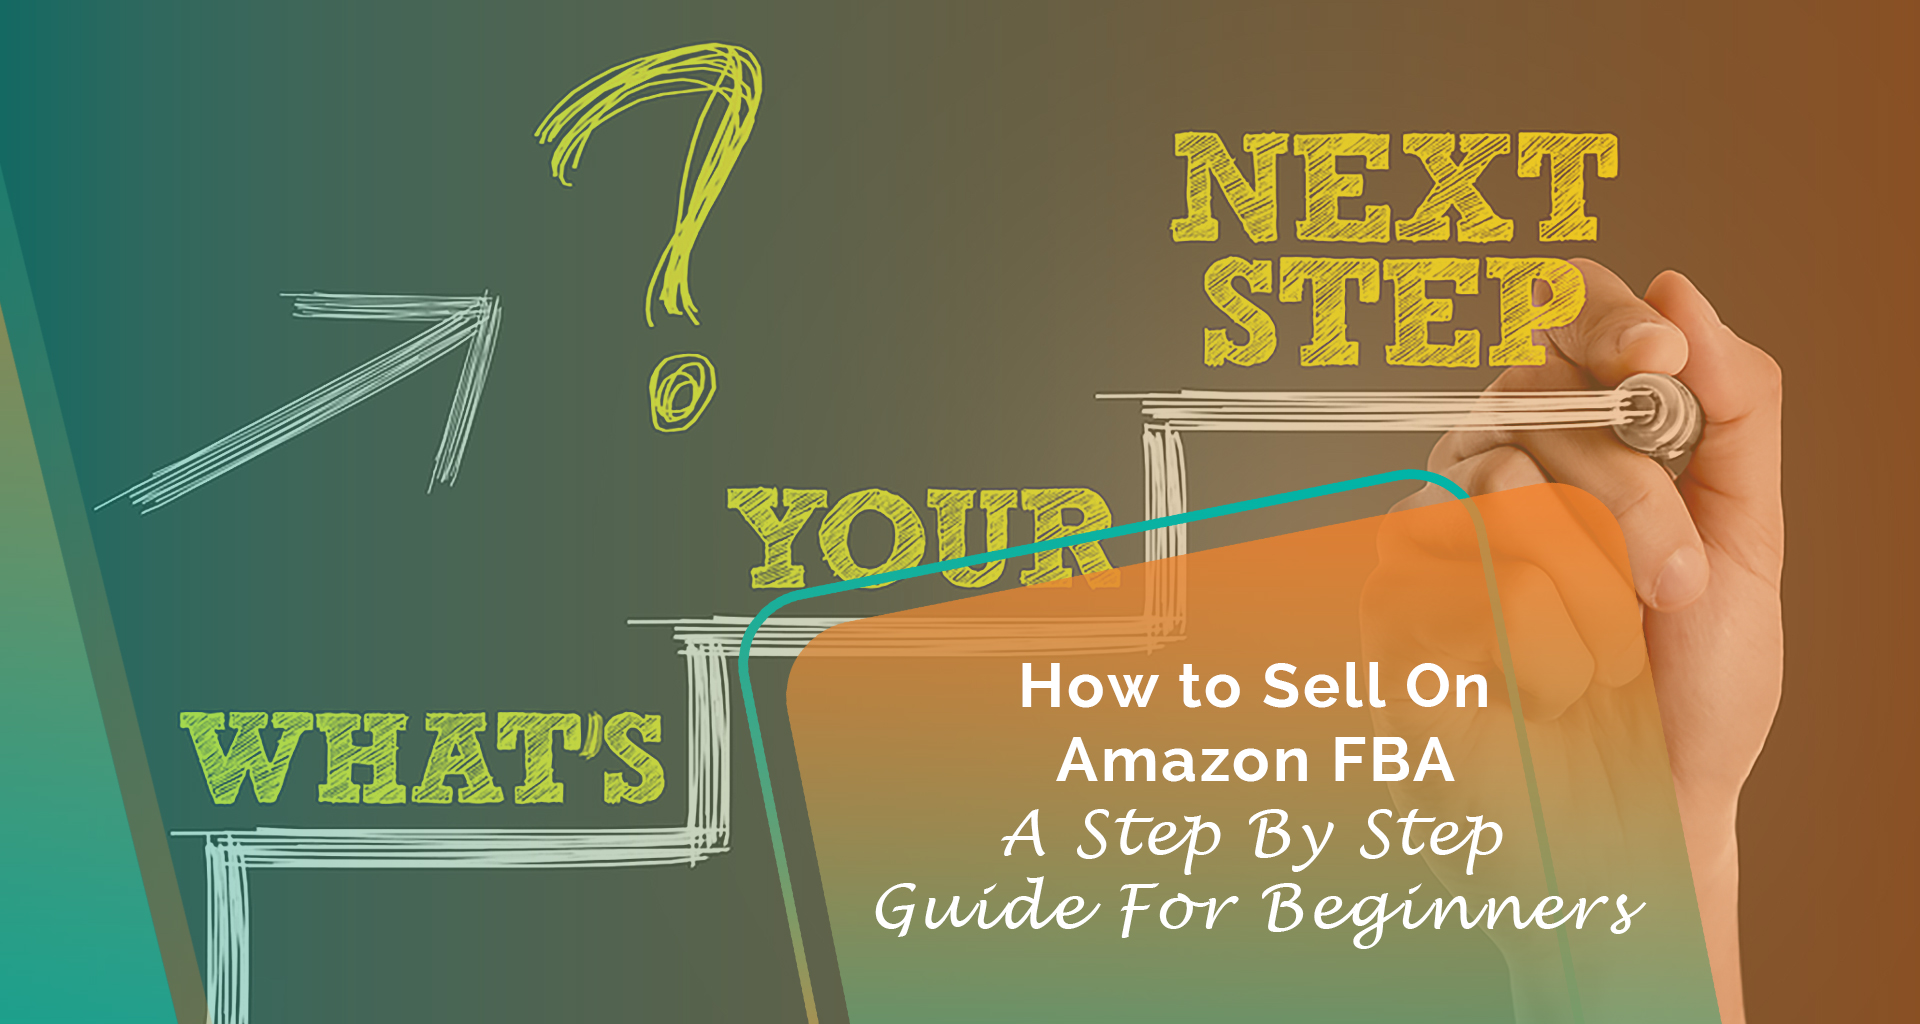 How to Sell On Amazon FBA (A Step-by-Step Guide for Beginners)